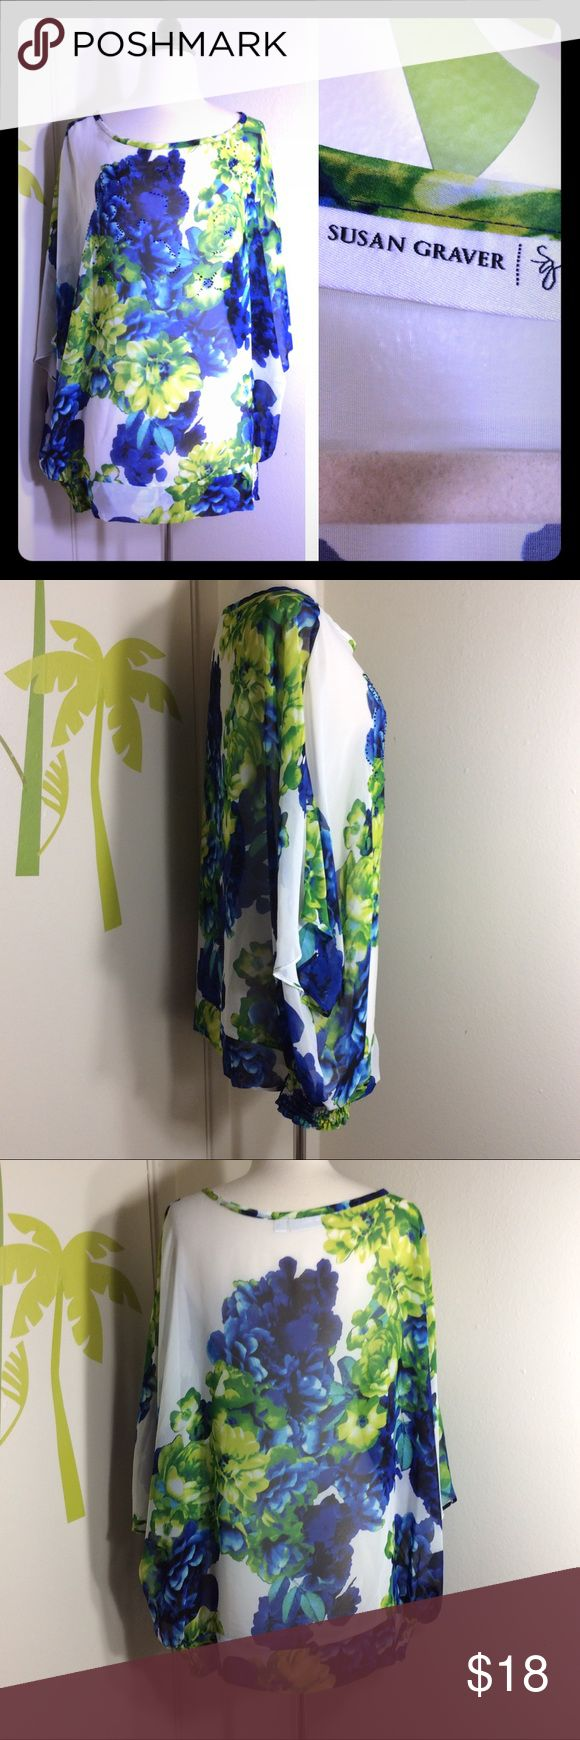 Susan Graver Green Sheer Floral Top Size 1X In great condition. Size 1X. Sheer, see through. Colored rhinestones on chest area. Susan Graver Tops Blouses